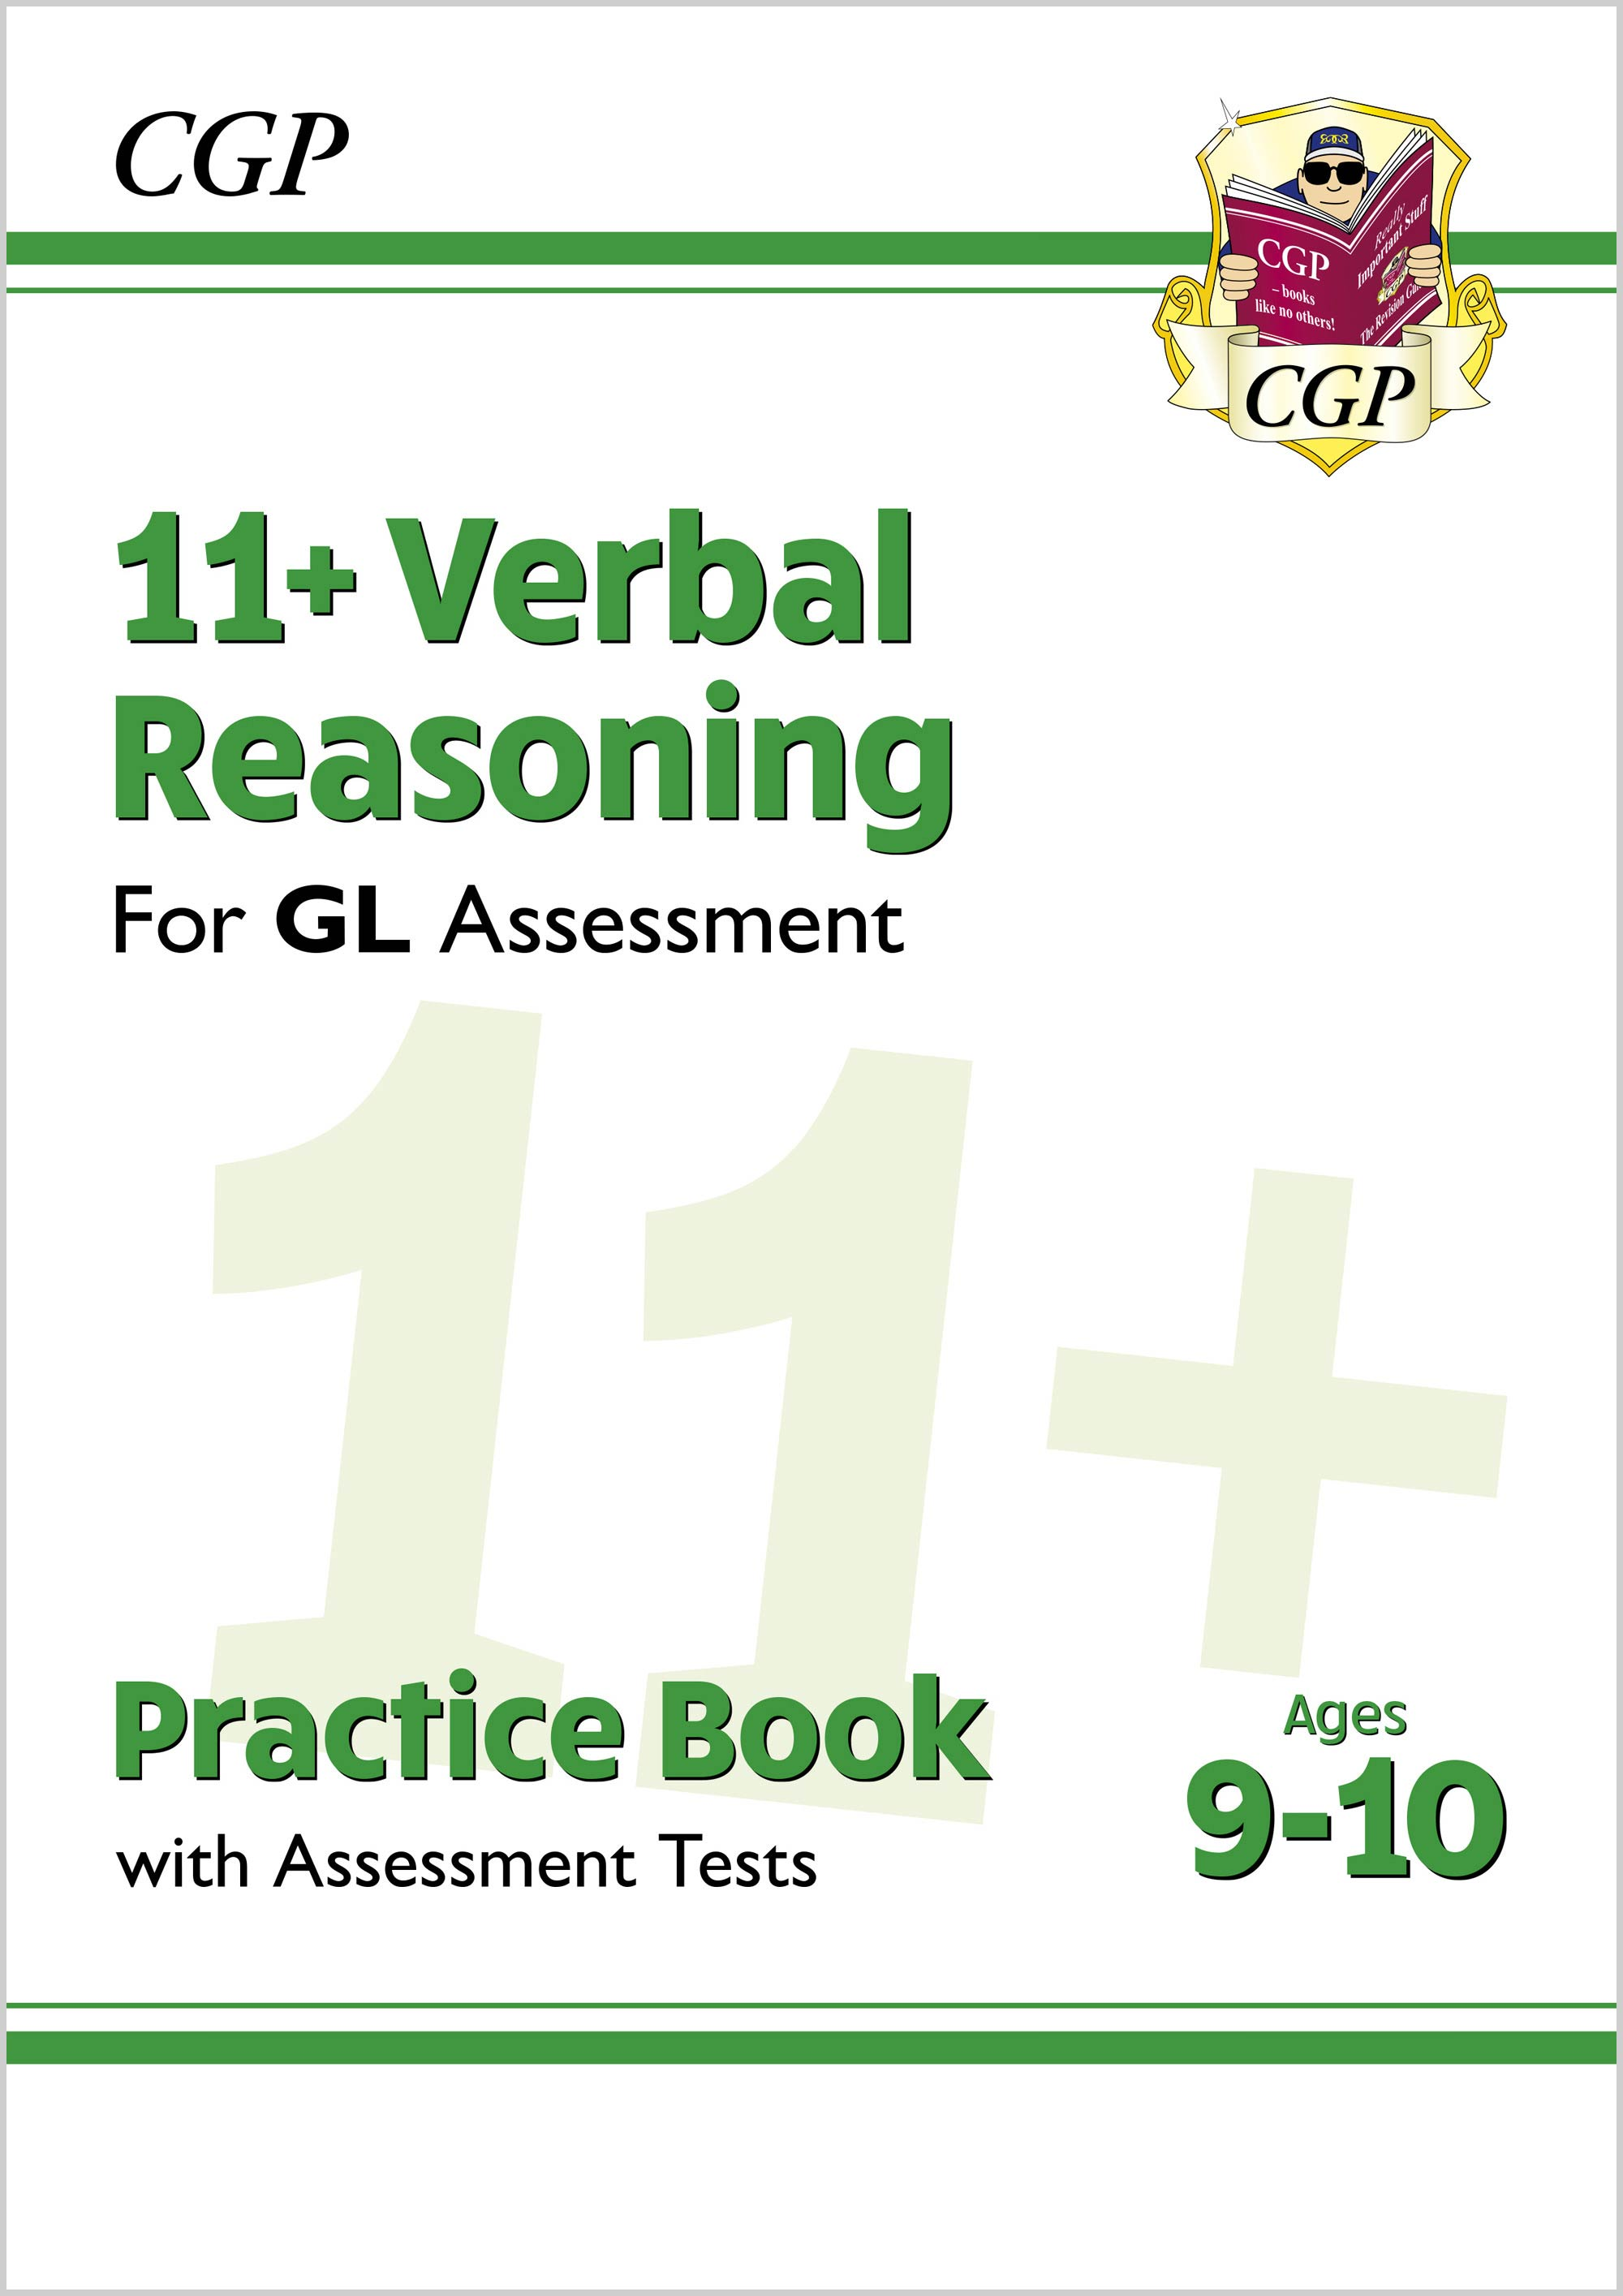 V5QE2DK - New 11+ GL Verbal Reasoning Practice Book & Assessment Tests - Ages 9-10 (with Online Edit